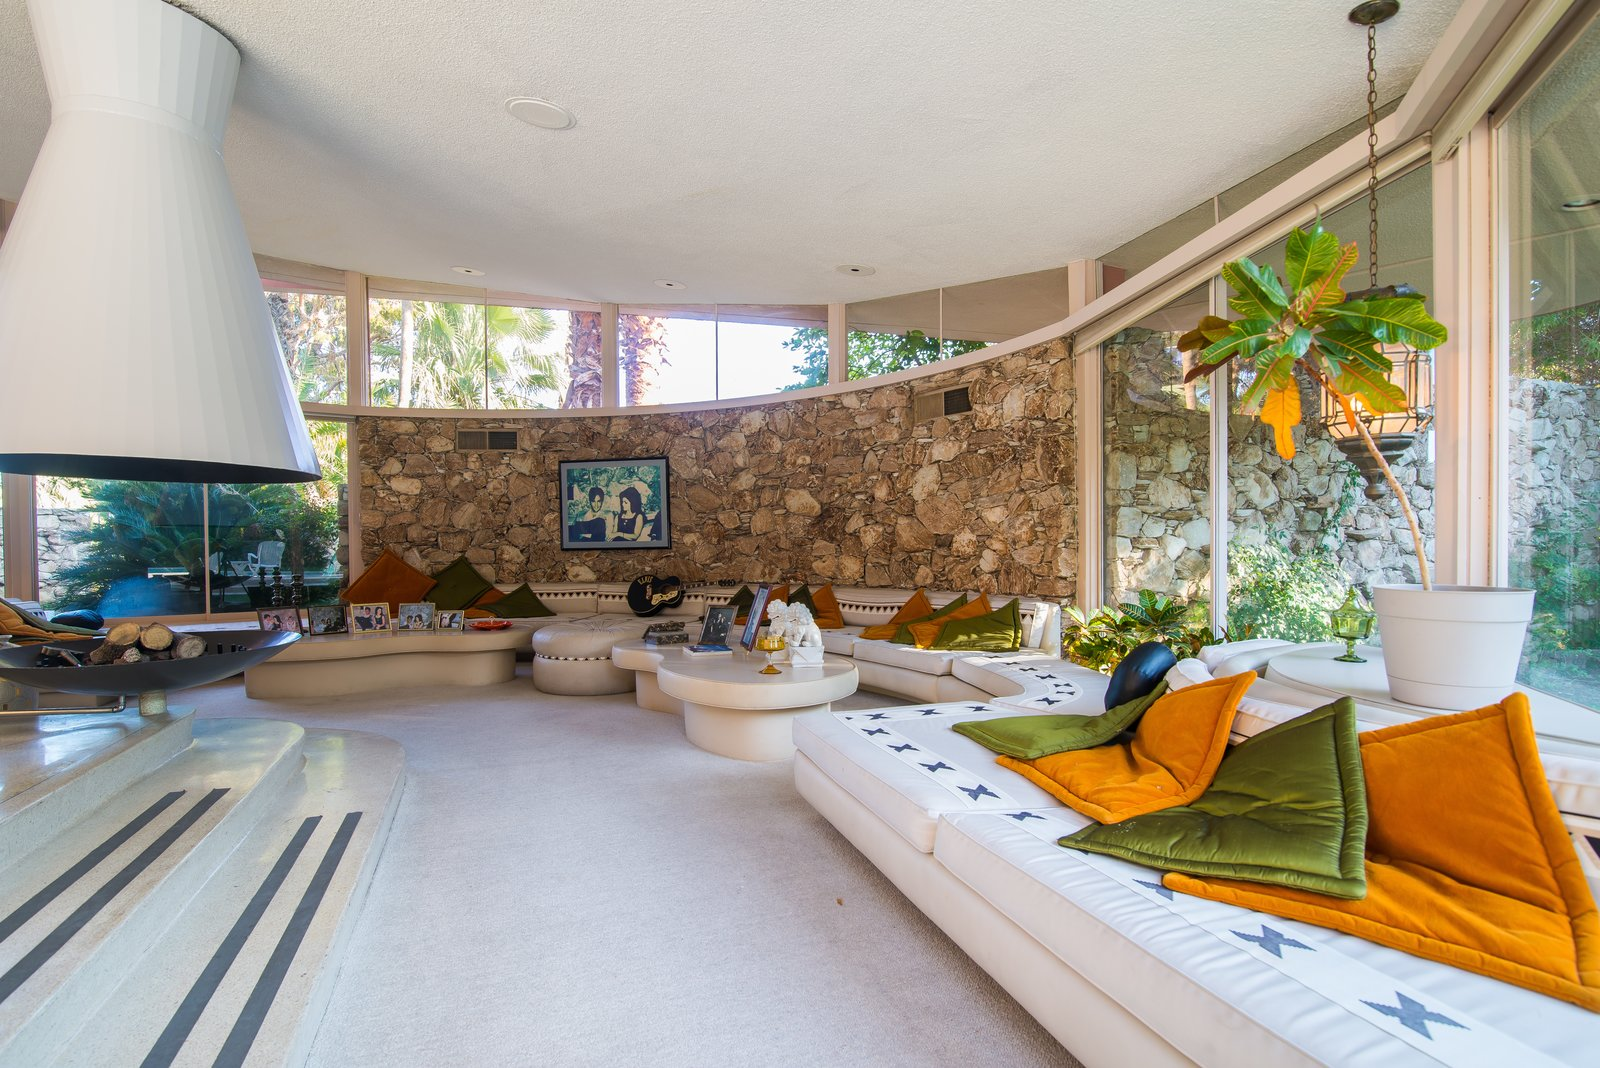 Living Room, Sofa, Sectional, Ottomans, Coffee Tables, Pendant Lighting, Recessed Lighting, Carpet Floor, and Hanging Fireplace  Photo 4 of 8 in Elvis Presley's Palm Springs Honeymoon Retreat Hits the Market